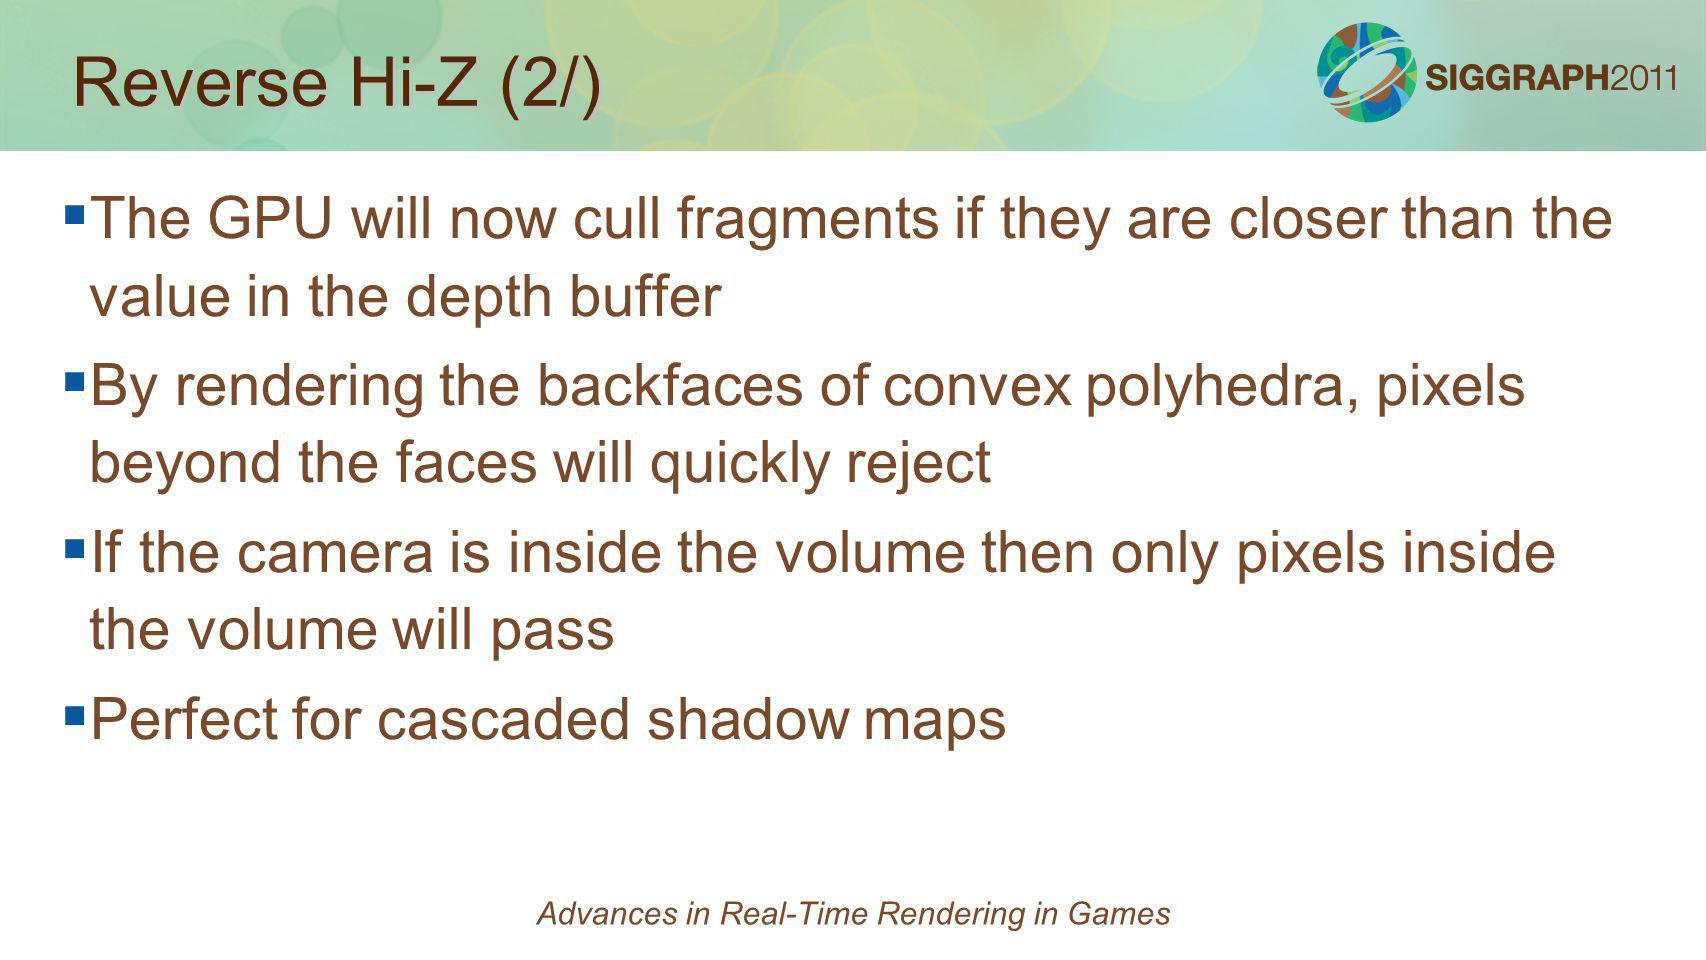 Reverse Hi-Z (2/) The GPU will now cull fragments if they are closer than the value in the depth buffer By rendering the backfaces of convex polyhedra